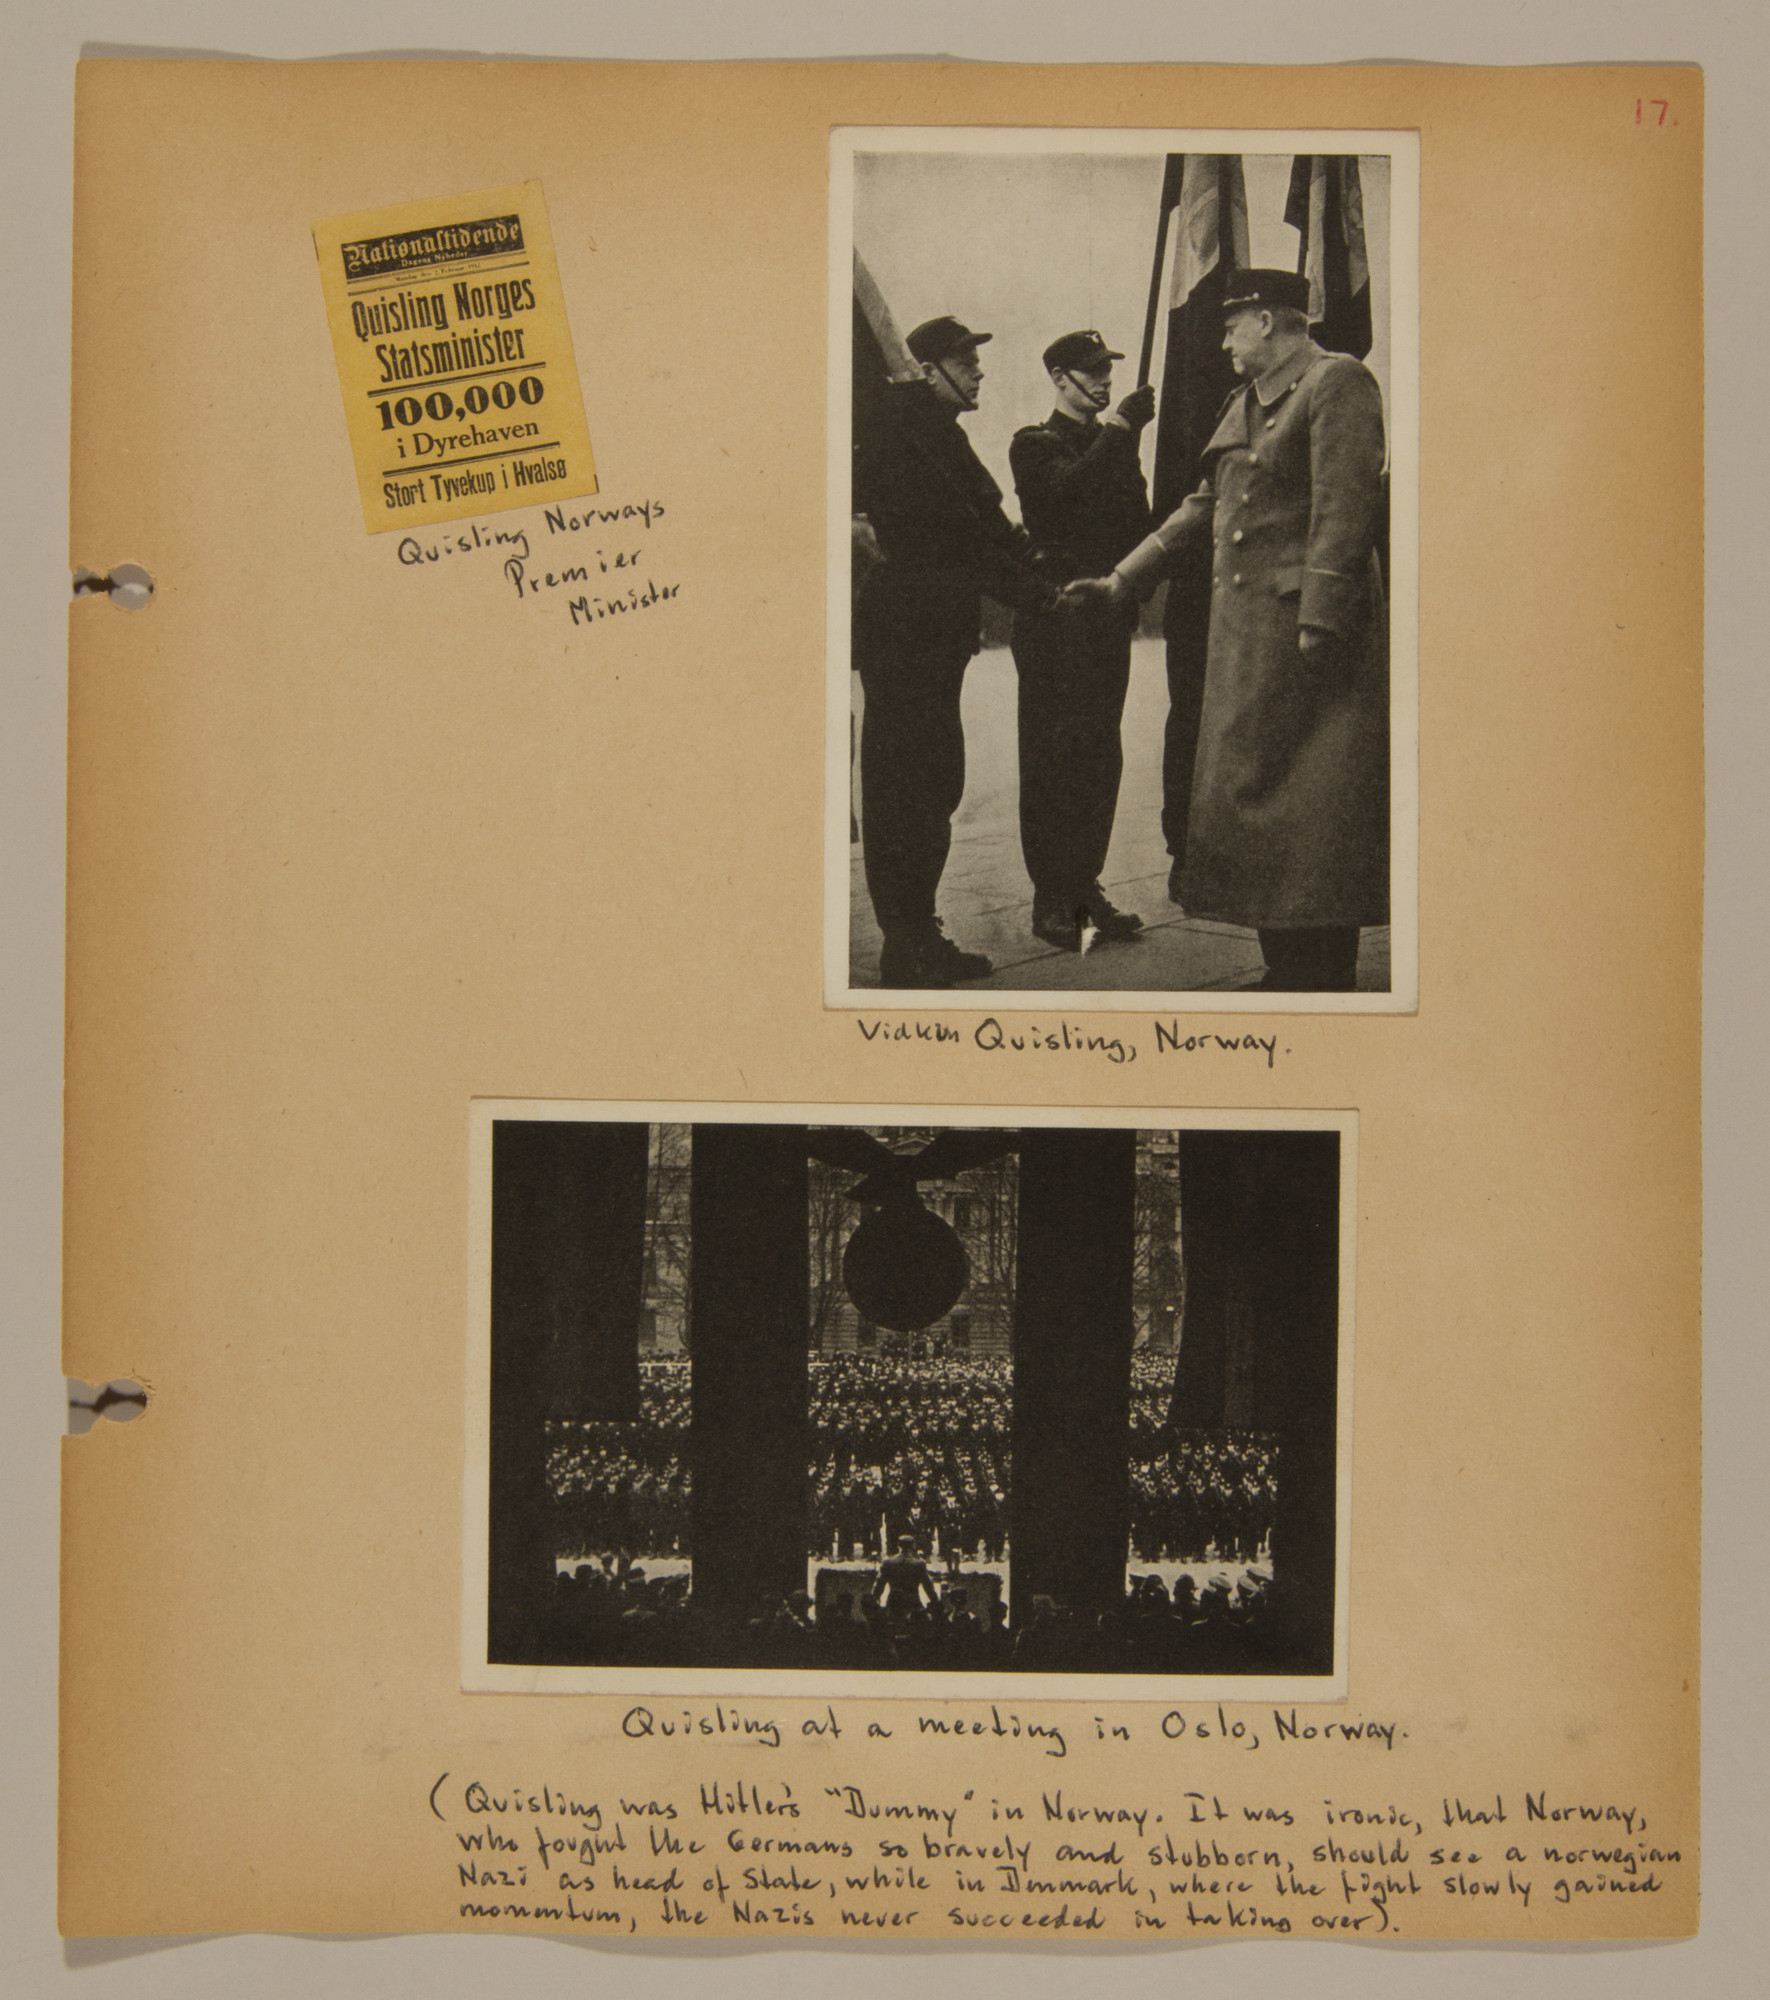 Page from volume two of a set of scrapbooks compiled by Bjorn Sibbern, a Danish policeman and resistance member, documenting the German occupation of Denmark.  This page has photographs of the Norwegian collaborator, Vidkun Quisling.